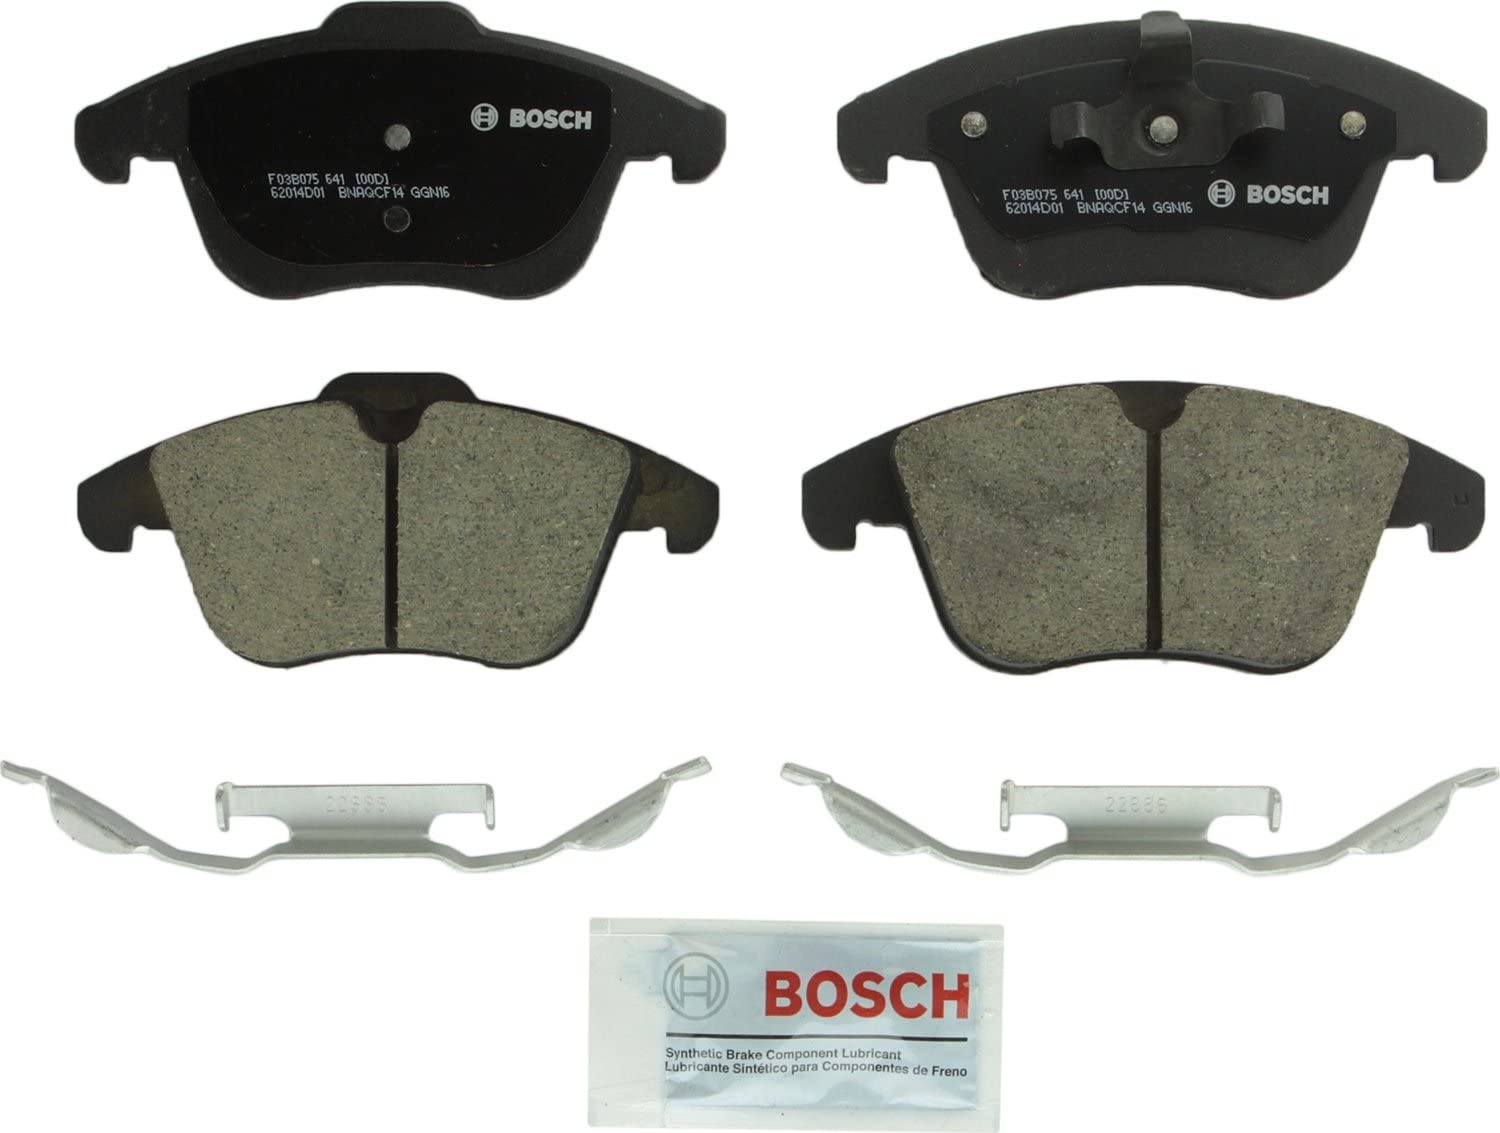 2010 2011 2012 2013 For Land Rover Range Rover Front and Rear Ceramic Brake Pads